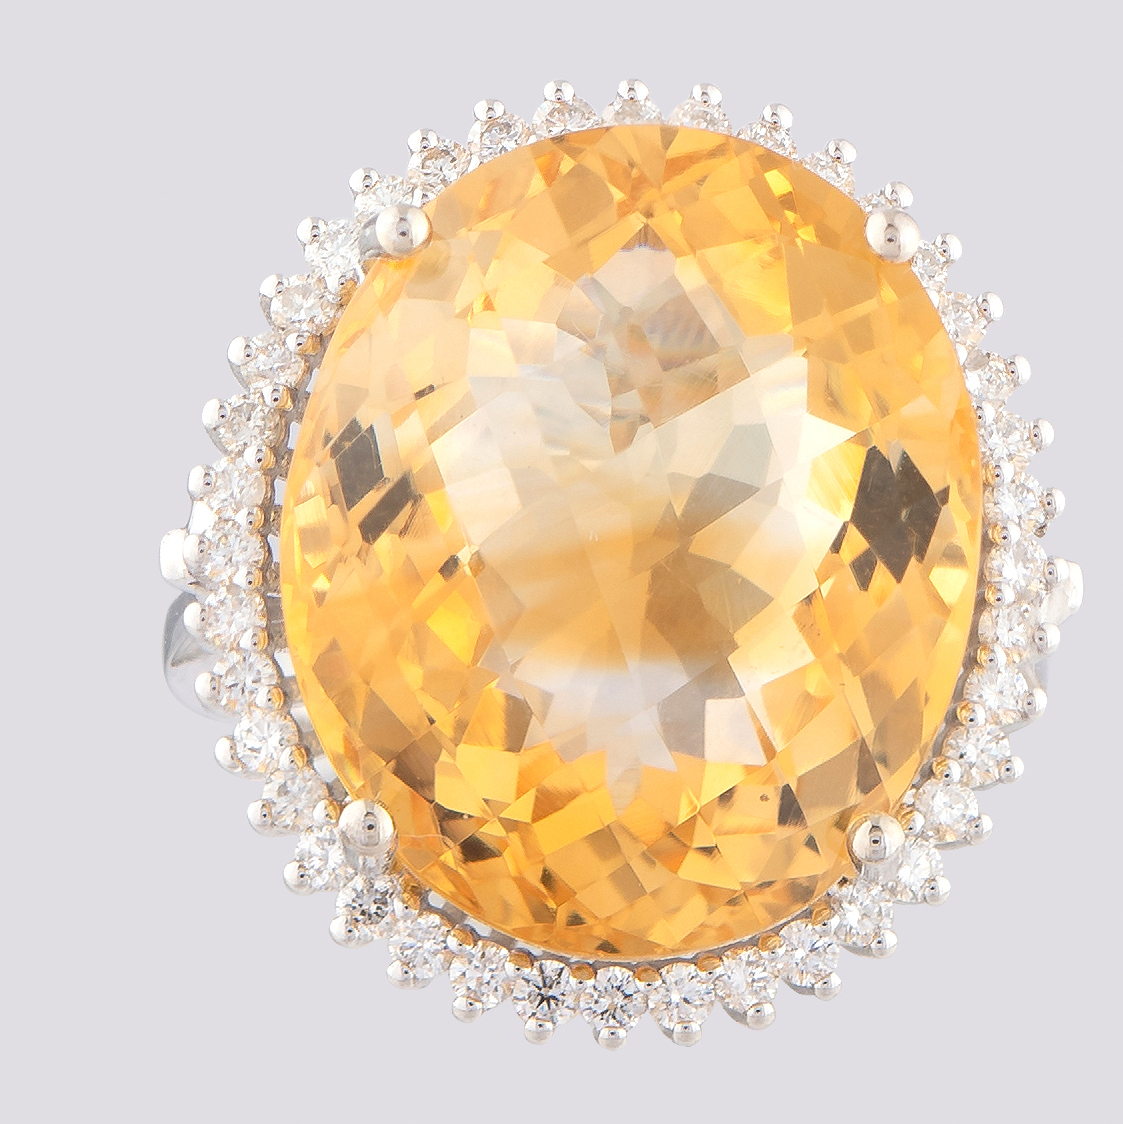 14K White Gold Large Cluster Ring 17,90 Ct. Citrine - 0,55 Ct. Diamond - Image 2 of 4